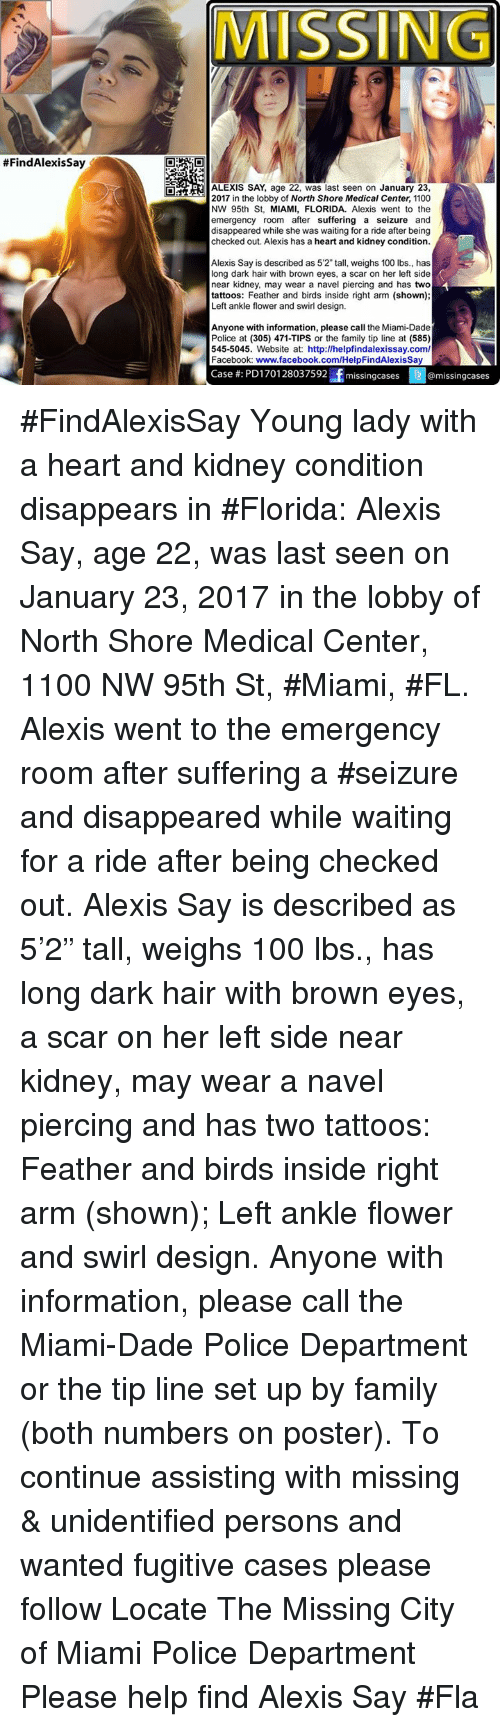 "Facebook, Memes, and Browns:  #Find AlexisSay  MISSING  OMAa ALEXIS SAY, age 22, was last seen on  January 23,  2017 in the lobby of North Shore Medical Center, 1100  NW 95th St, MIAMI, FLORIDA. Alexis went to the  emergency room after suffering a seizure and  disappeared while she was waiting for a ride after being  checked out. Alexis has a heart and kidney condition.  Alexis Say is described as 5'2"" tall, weighs 100 lbs., has  long dark hair with brown eyes, a scar on her left side  near kidney, may wear a navel piercing and has two  tattoos: Feather and birds inside right arm shown  Left ankle flower and swirl design.  Anyone with information, please call the Miami-Dade  Police at (305) 471-TIPS or the family tip line at (585)  545-5045. Website at: http:llhelpfindalexissay.com/  Facebook: www.facebook.com/HelpFindAlexisSay  Case PD1701 28037592 f  missing cases (3 @missing cases #FindAlexisSay Young lady with a heart and kidney condition disappears in #Florida: Alexis Say, age 22, was last seen on January 23, 2017 in the lobby of North Shore Medical Center, 1100 NW 95th St, #Miami, #FL. Alexis went to the emergency room after suffering a #seizure and disappeared while waiting for a ride after being checked out.   Alexis Say is described as 5'2"" tall, weighs 100 lbs., has long dark hair with brown eyes, a scar on her left side near kidney, may wear a navel piercing and has two tattoos: Feather and birds inside right arm (shown); Left ankle flower and swirl design.   Anyone with information, please call the Miami-Dade Police Department or the tip line set up by family (both numbers on poster).  To continue assisting with missing & unidentified persons and wanted fugitive cases please follow Locate The Missing  City of Miami Police Department Please help find Alexis Say #Fla"